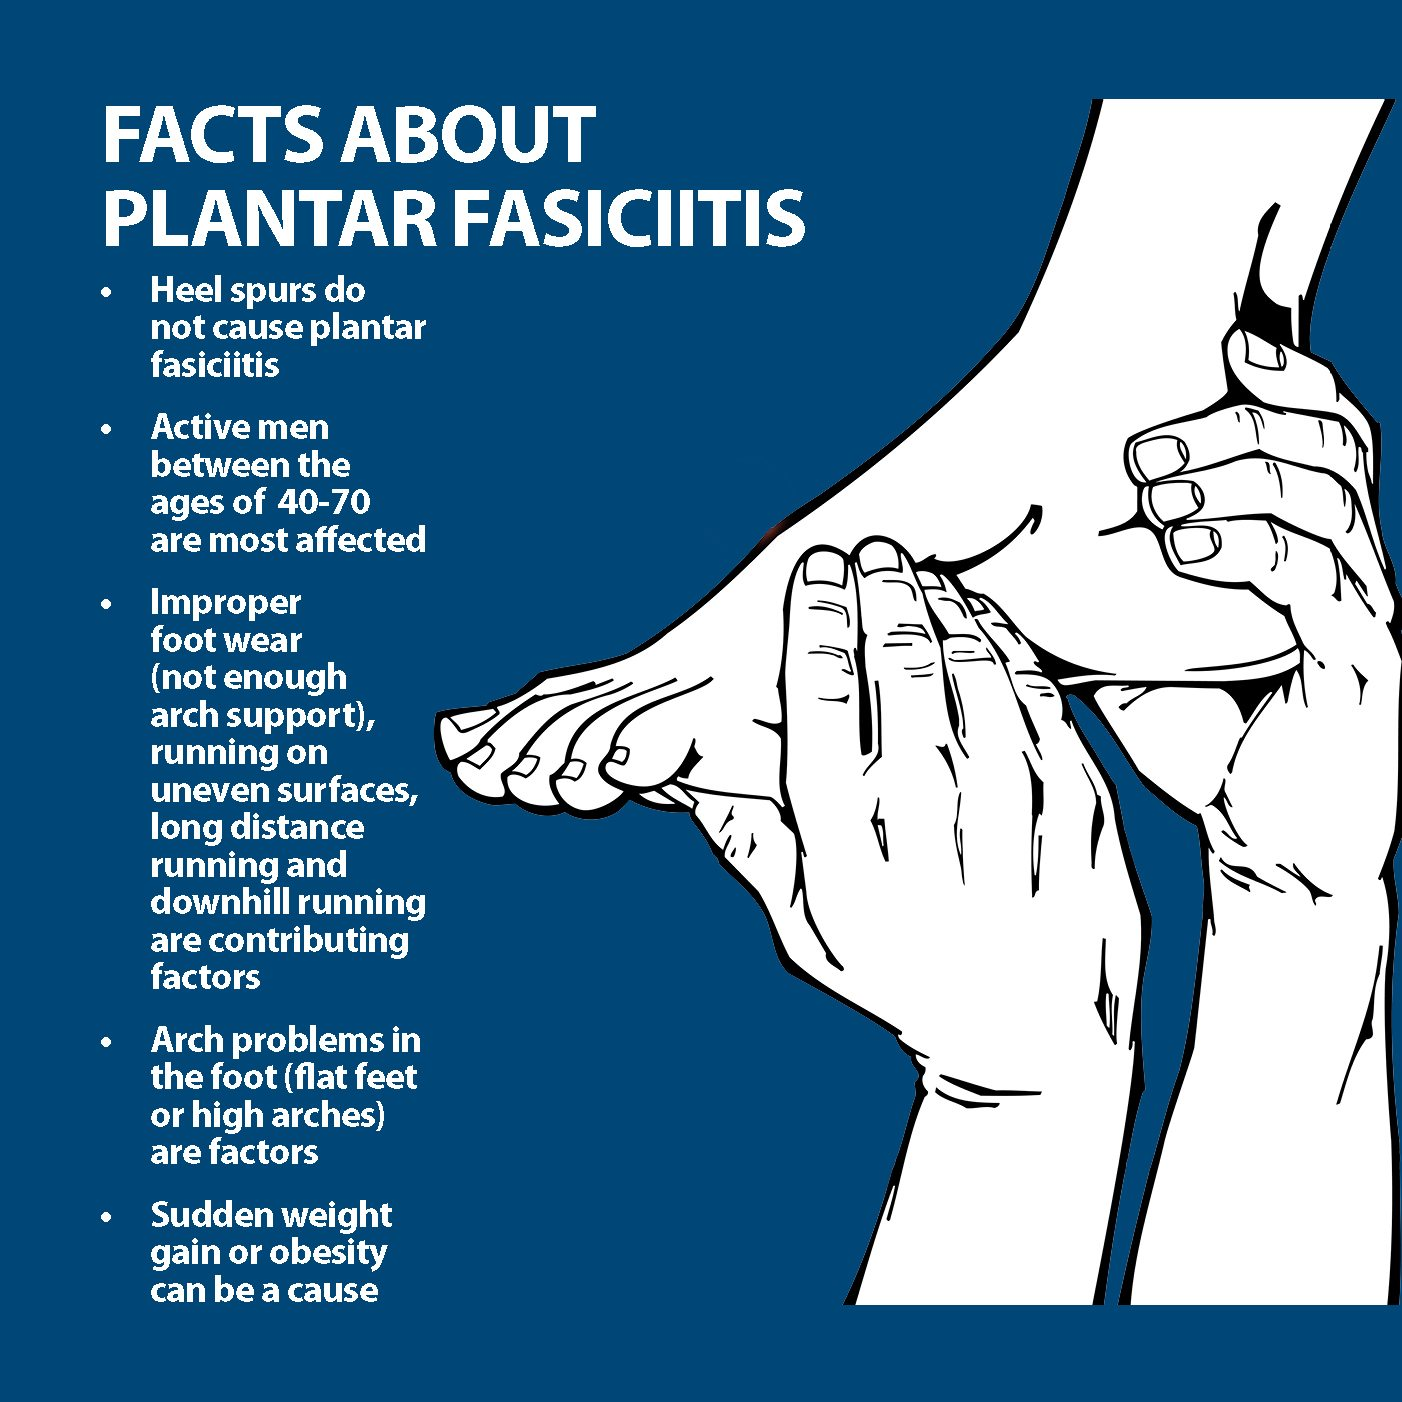 Facts about Plantar Fasciitis